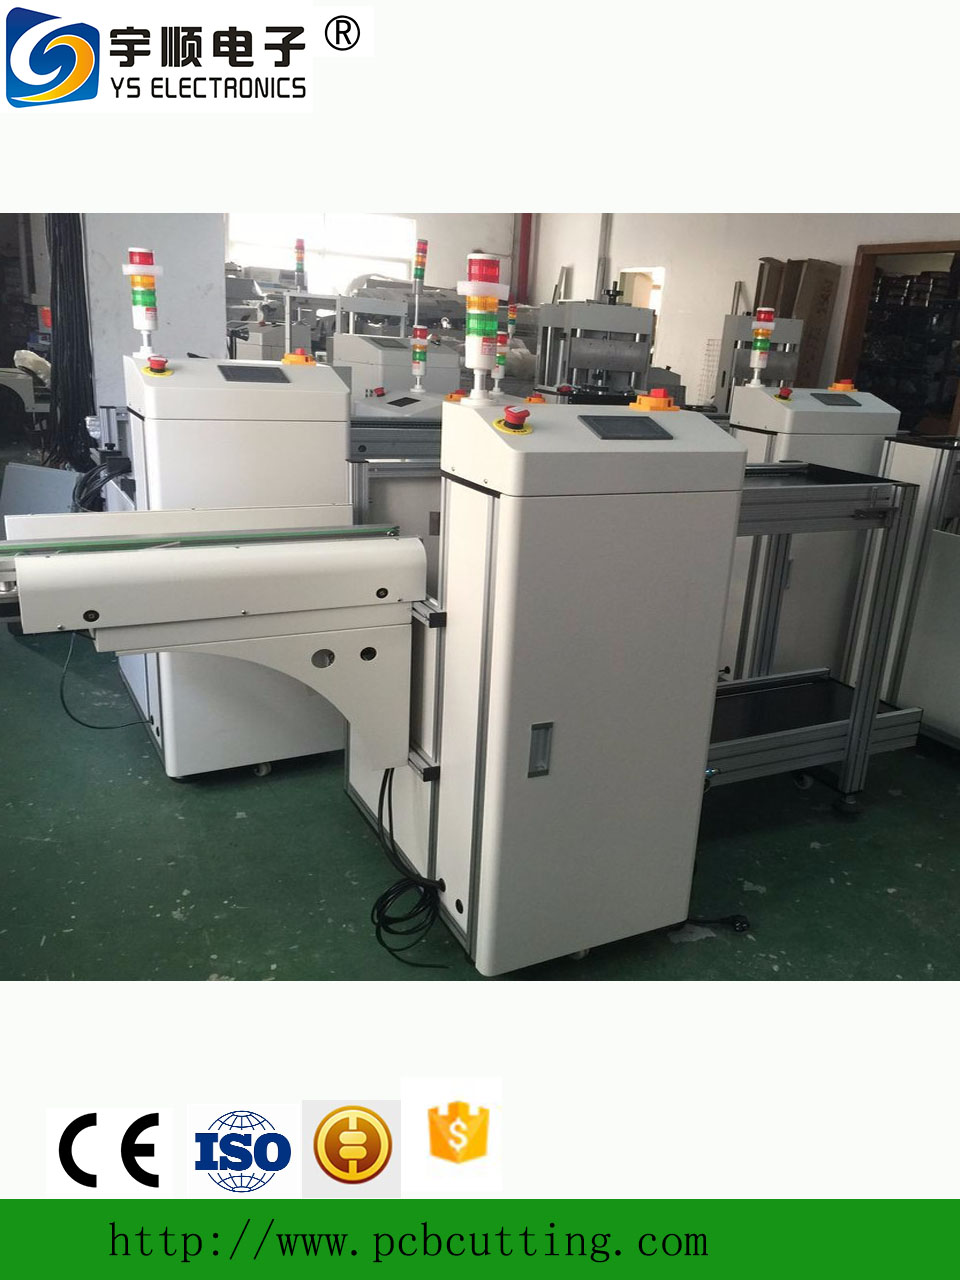 SMT unloader PCB handling equipment/Automatic SMT unloader equipment for PCBa